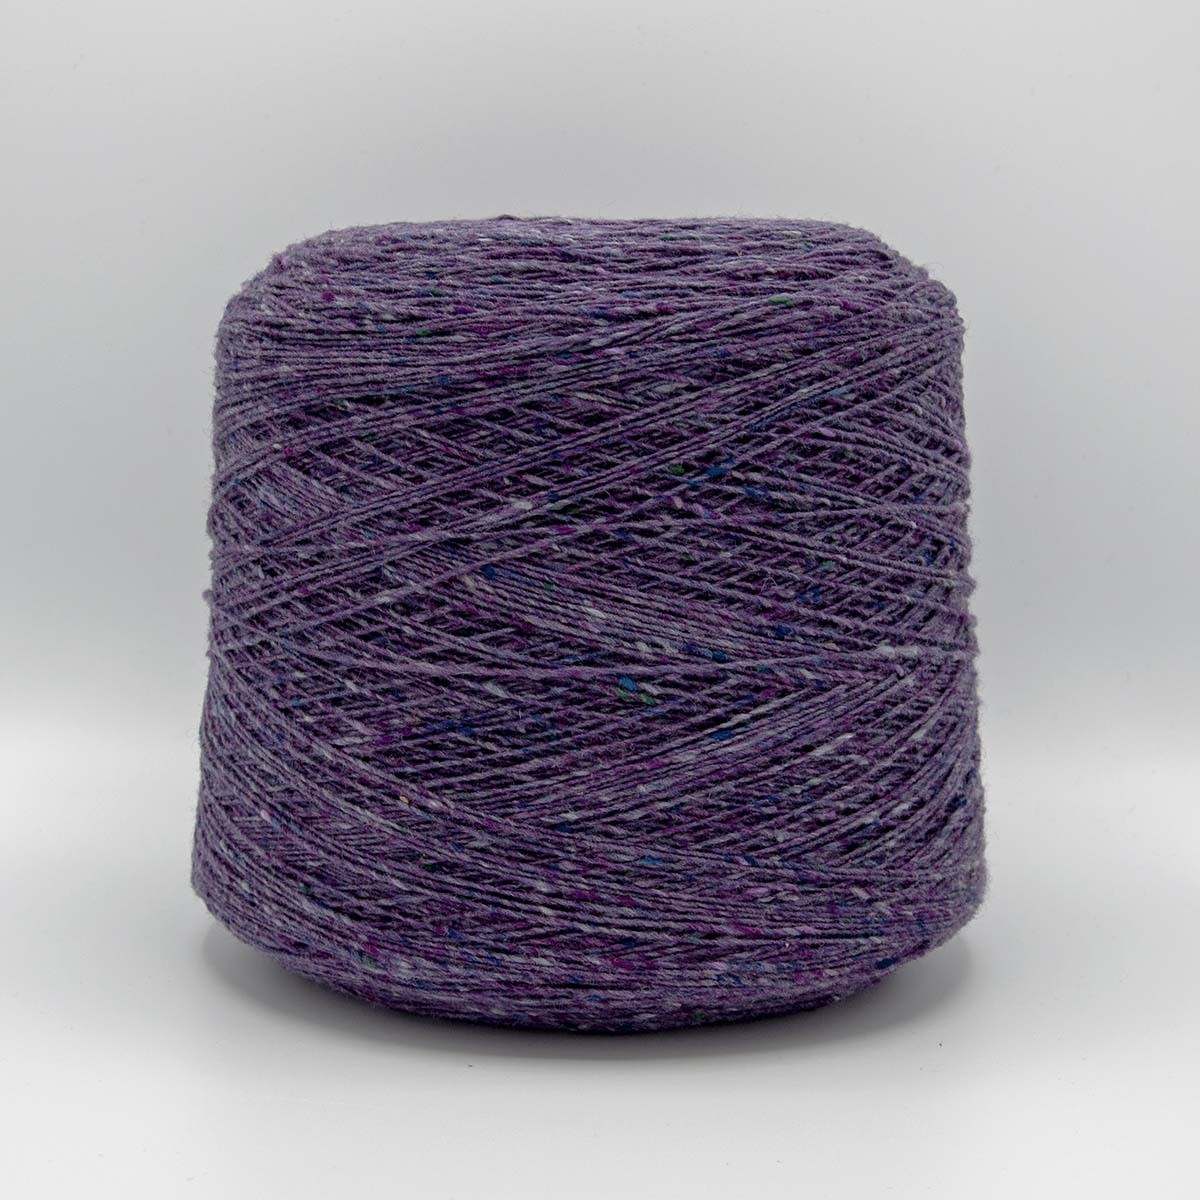 Knoll Yarns Soft Donegal (одинарный твид) - 5582